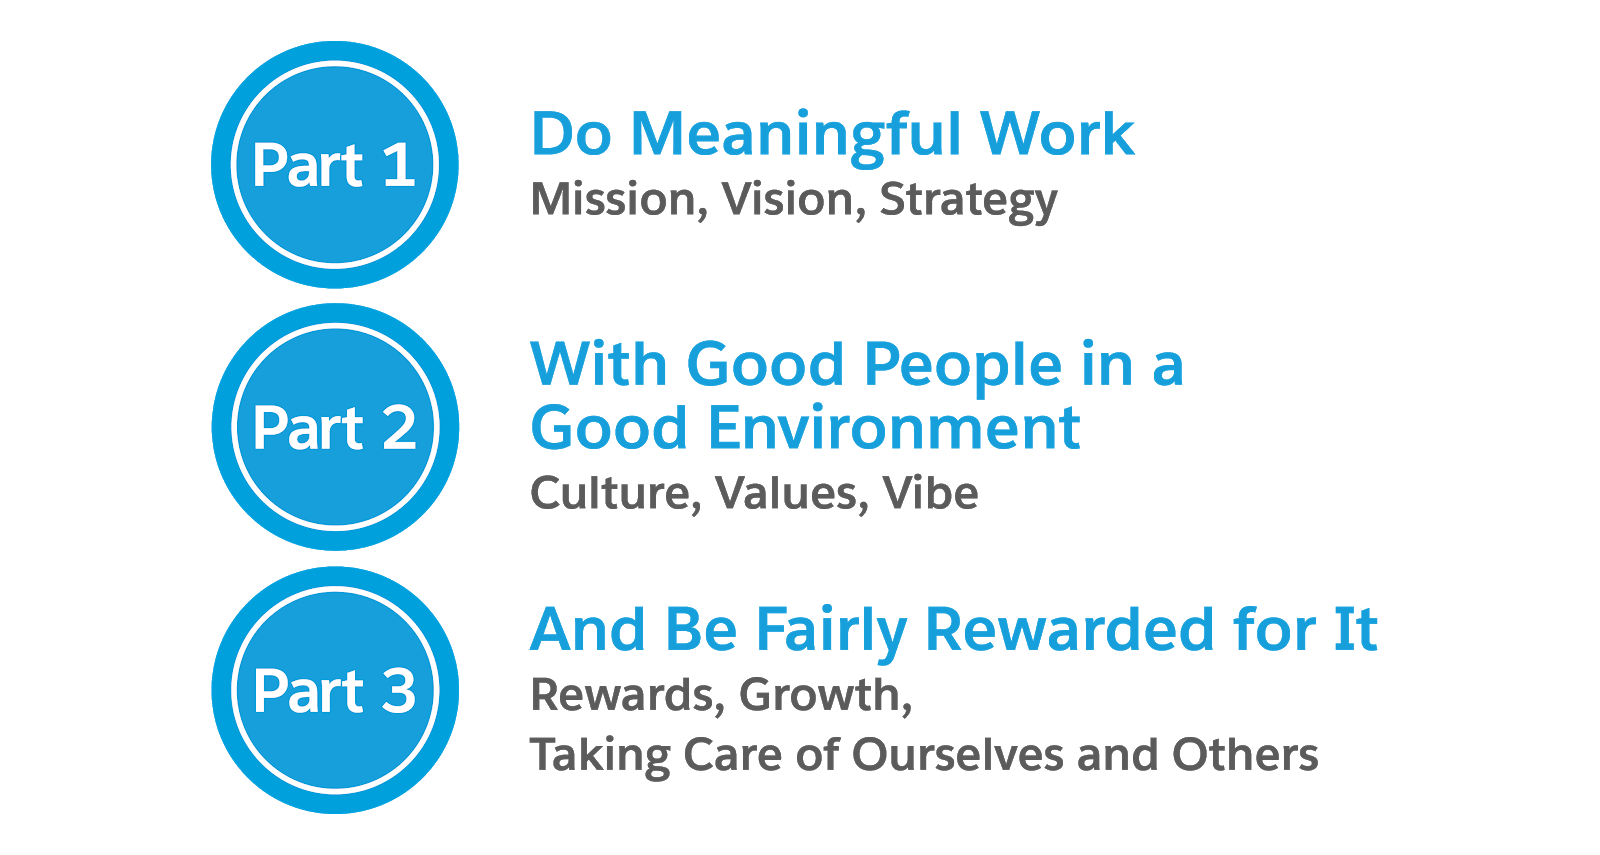 Part 1: Do Meaningful Work (Mission, Vision, Strategy); Part 2: With Good People in a Good Environment (Culture, Values, Vibe); Part 3: And Be Fairly Rewarded for It (Rewards, Growth, Taking Care of Ourselves and Others)